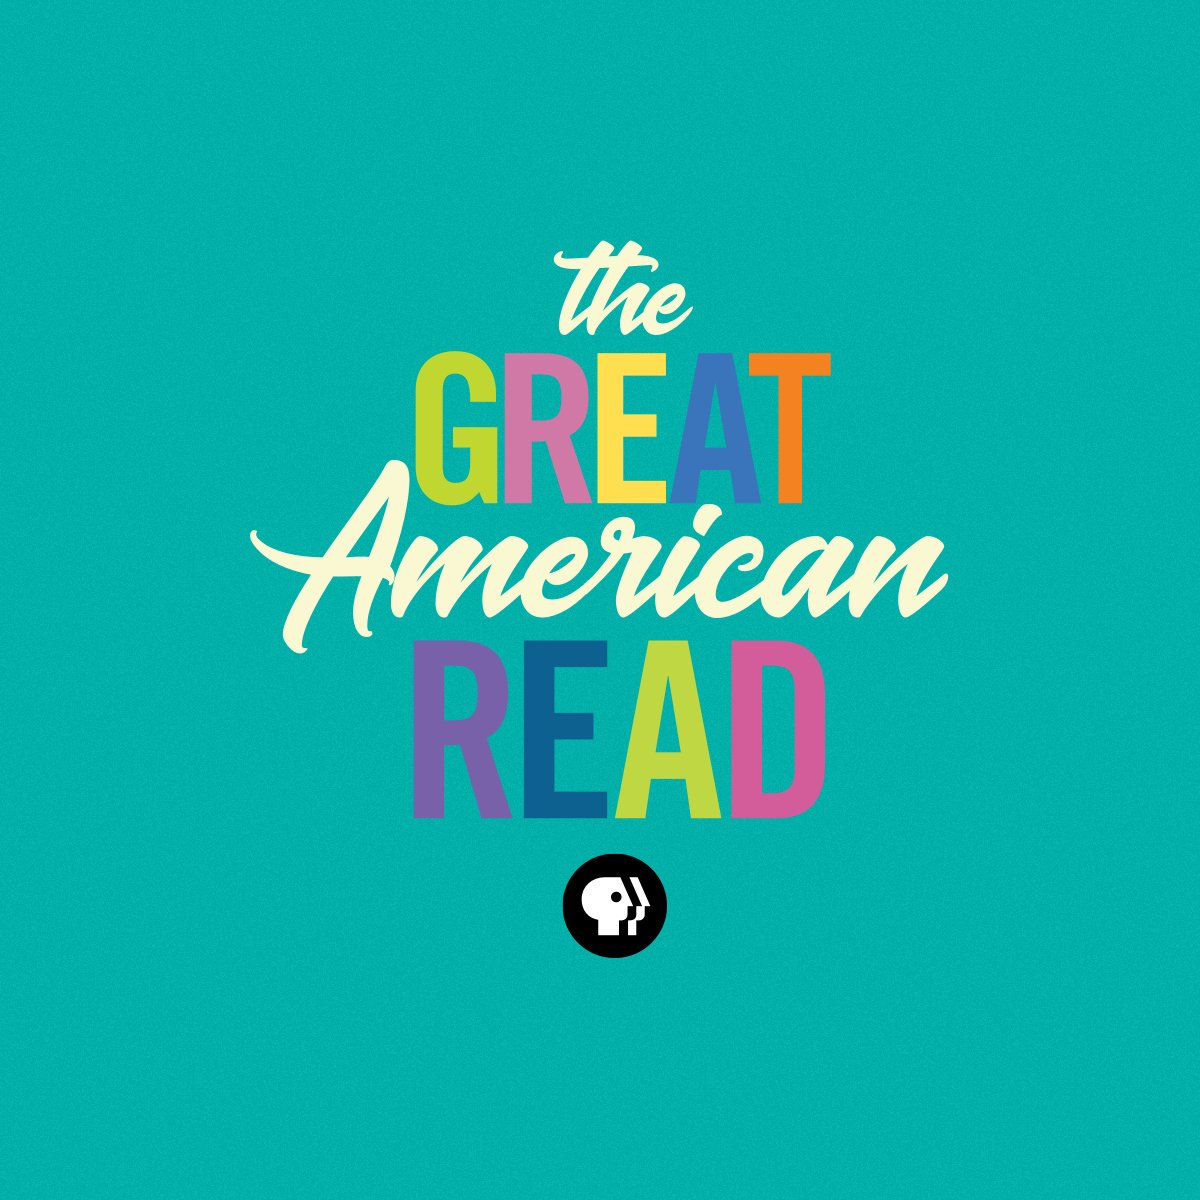 'Fifty Shades' Notwithstanding, Librarians Embrace the Great American Read  http:// ow.ly/OXRz30k6o9A  &nbsp;    #GreatReadPBS @PBS<br>http://pic.twitter.com/2xeaDUqsHA